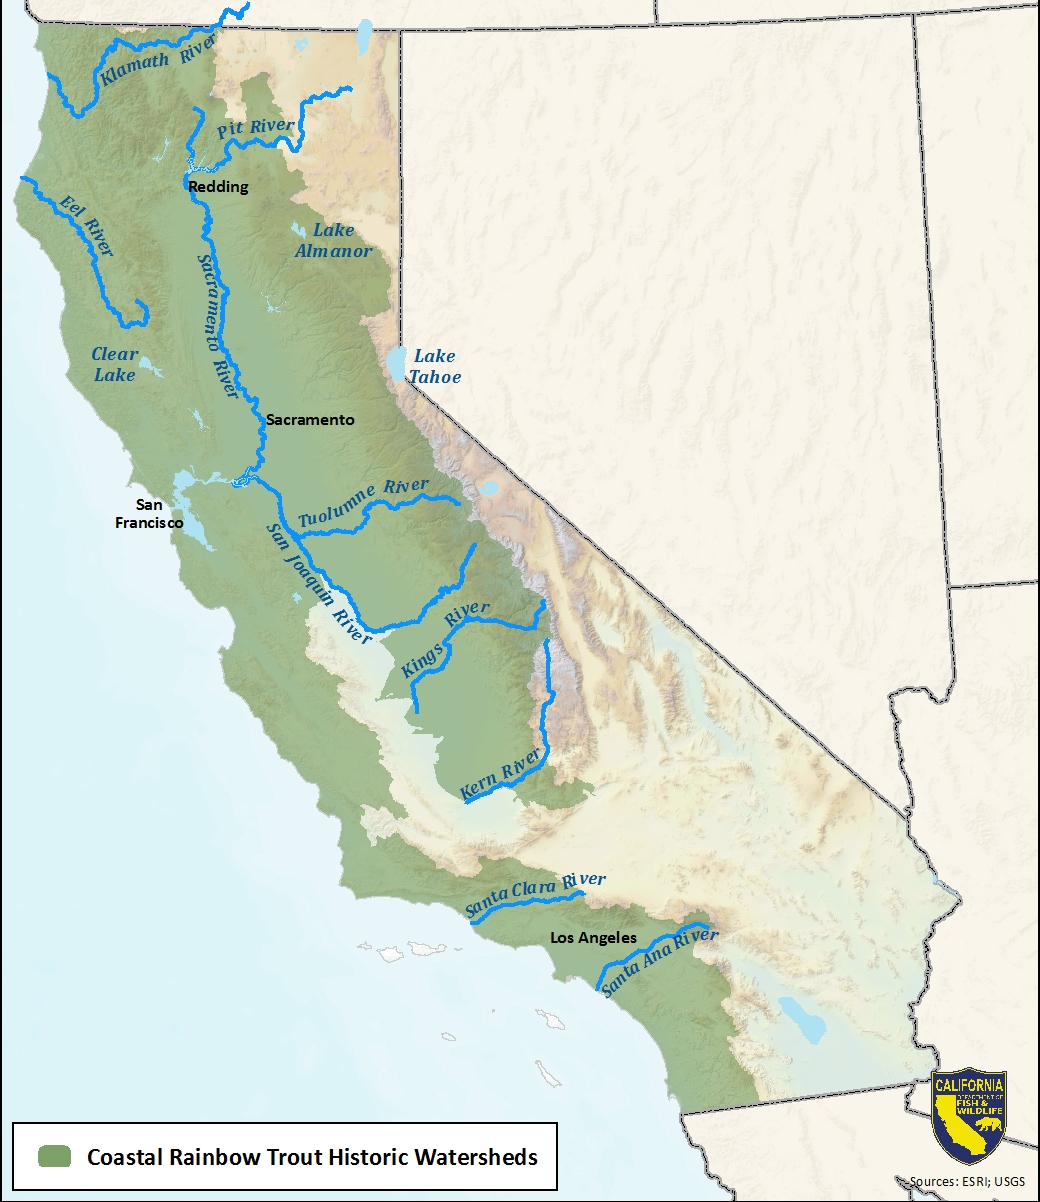 Map of coastal rainbow trout historic watersheds-link opens in a new window